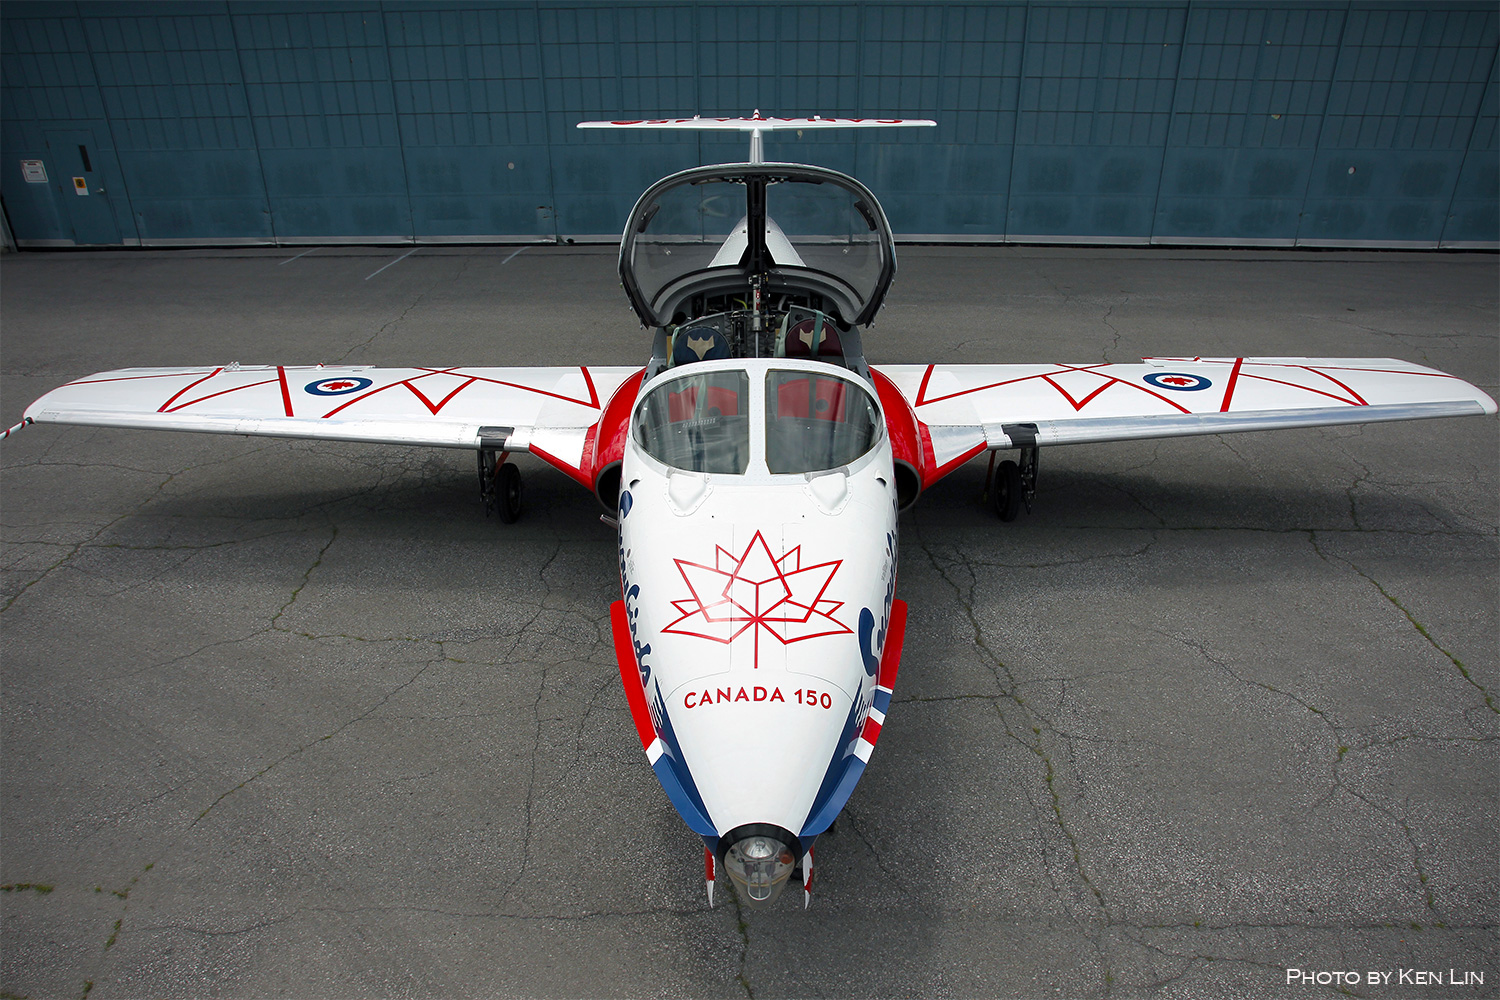 A red, white and blue aircraft